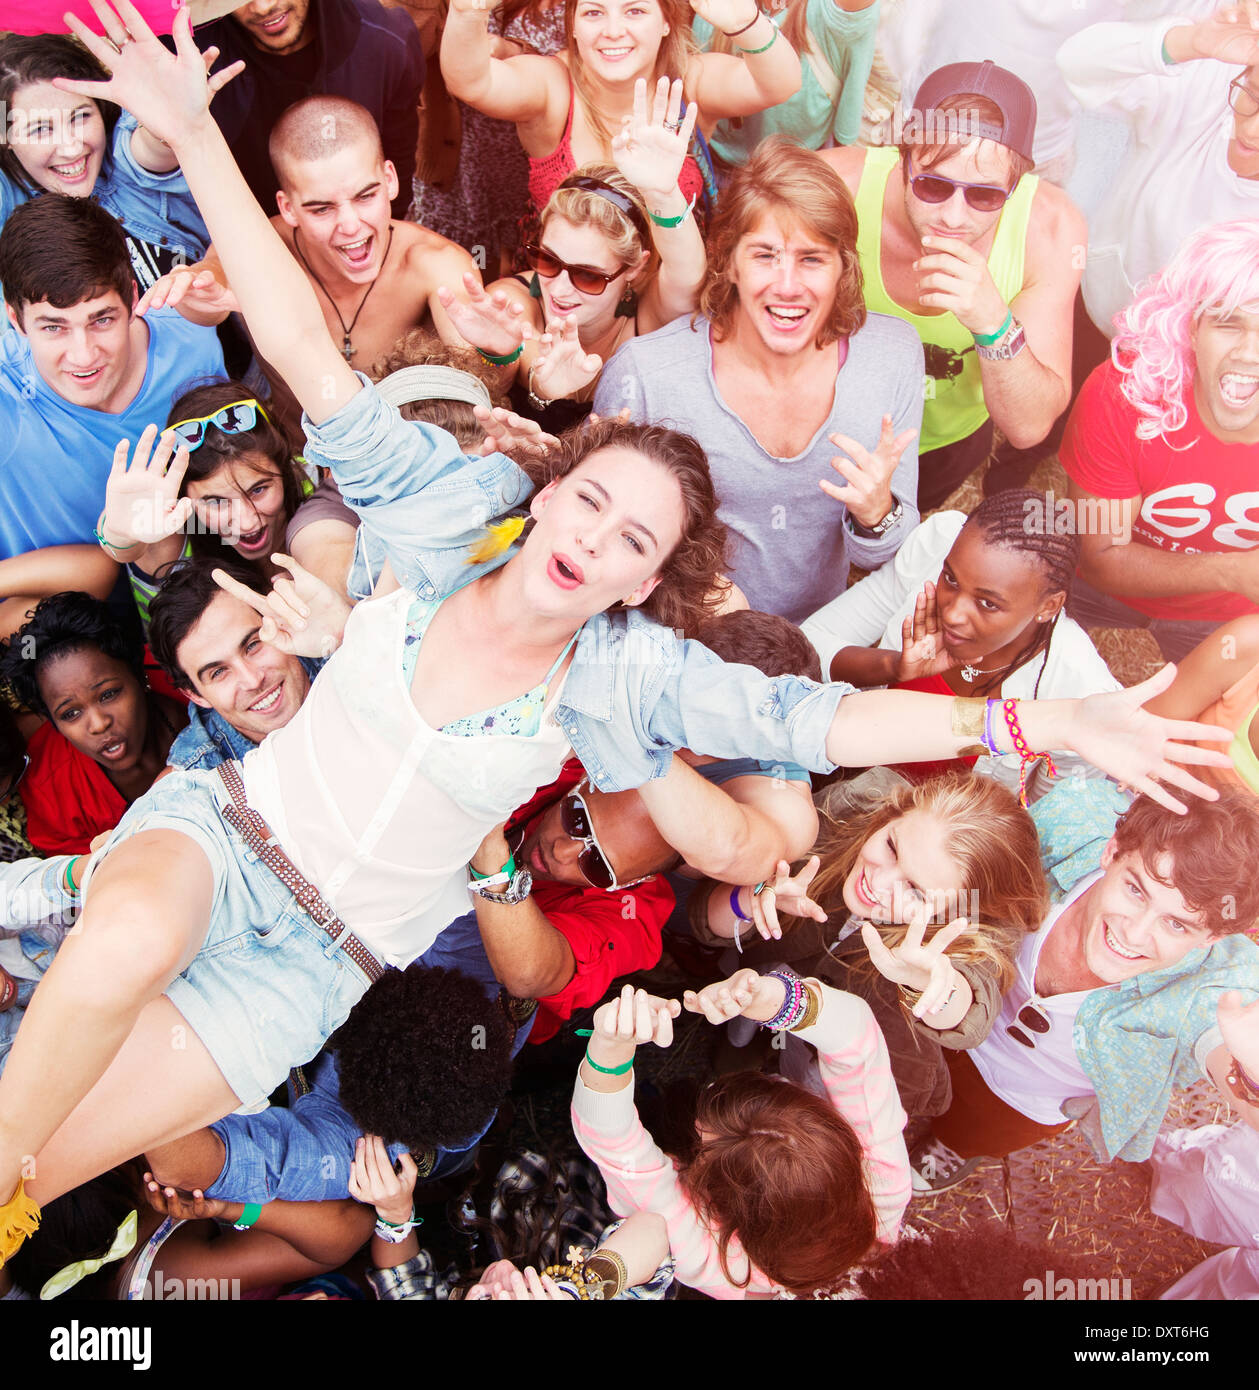 Enthusiastic woman crowd surfing at music festival Stock Photo